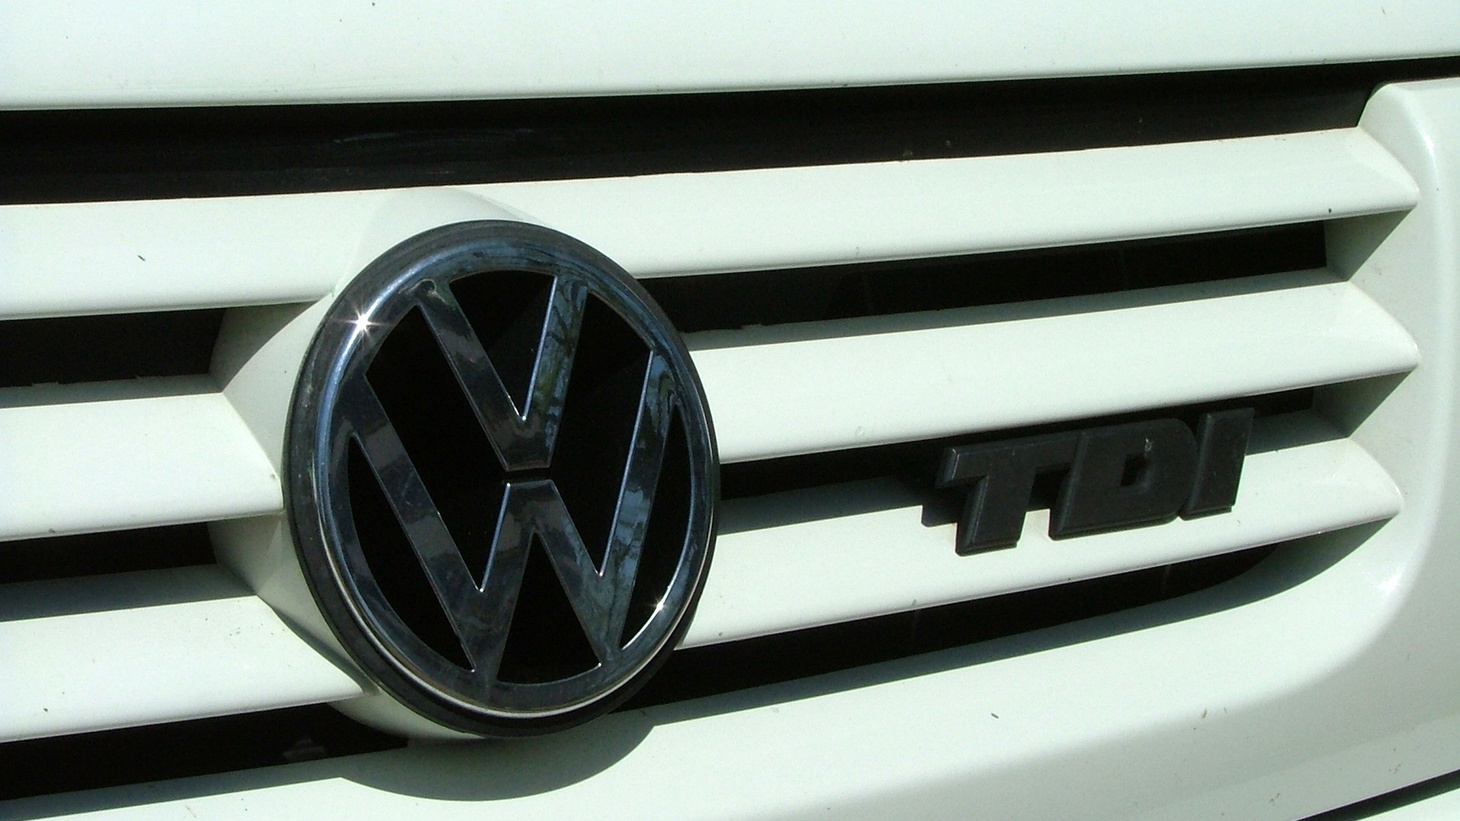 Volkswagen admits that it cheated on smog tests for almost a half-million diesel engines in the US, with 50,000 to 60,000 in California alone. Company stock is already falling, fines could amount to $18 billion and all those vehicles will have to be retrofitted. That's if customers bring them in. Are they likely to do that when the whole point of the cheating was making the cars fun to drive?